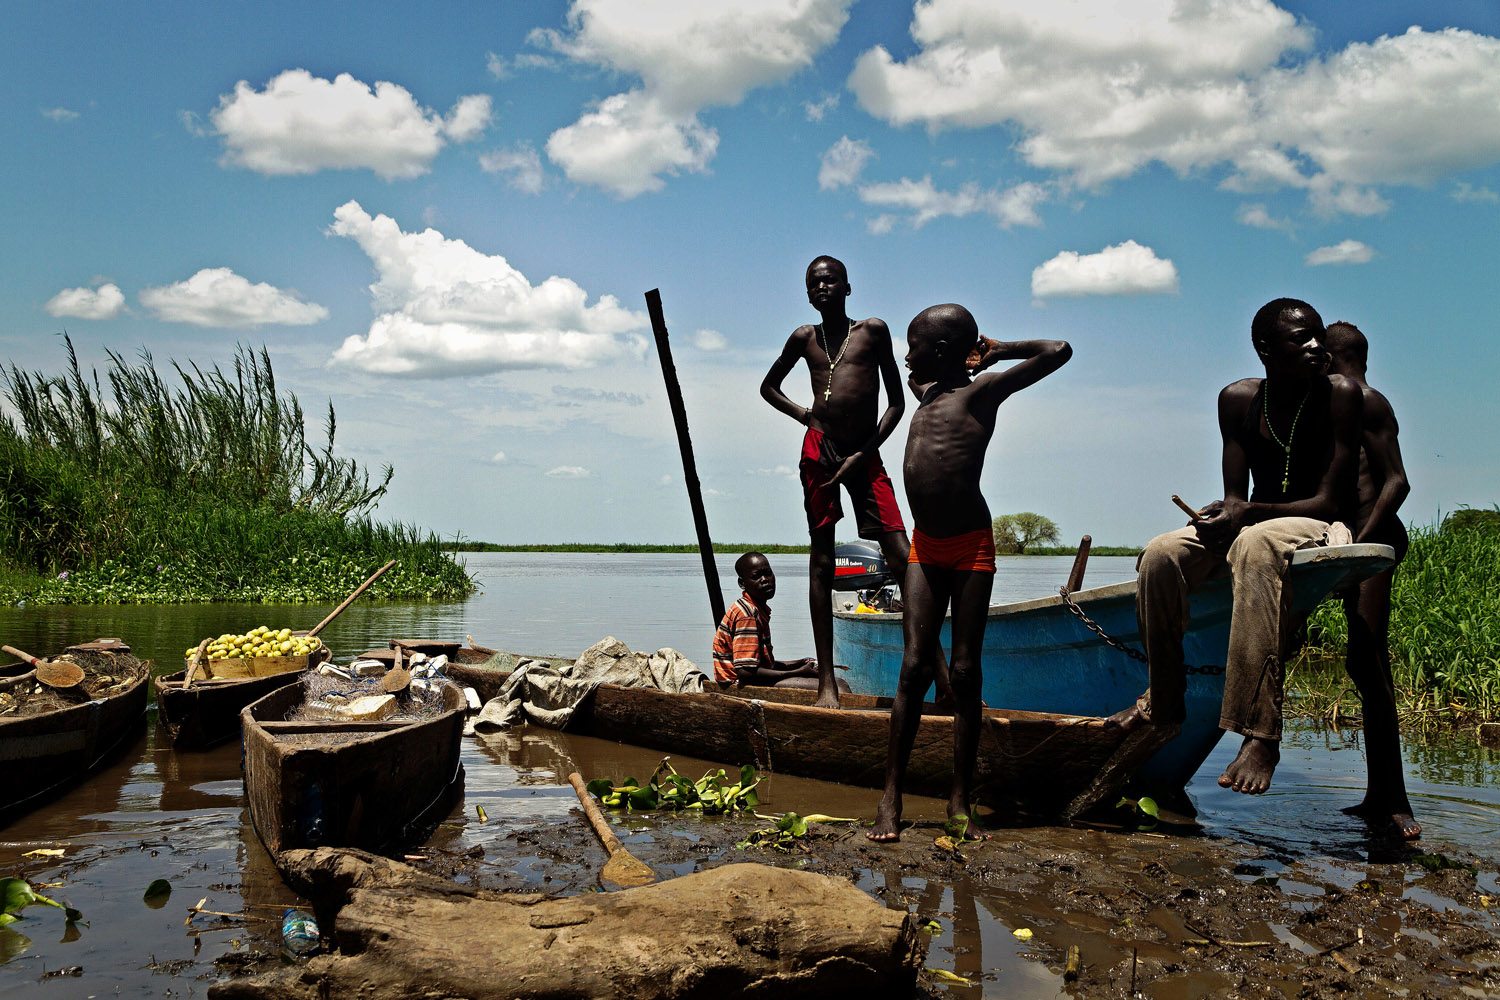 Sept. 17, 2012. Boys from the Mandari tribe wait by the Nile river for boats with the day's catch to arrive in Terekeka, a fishing community 75km north of Juba in South Sudan.